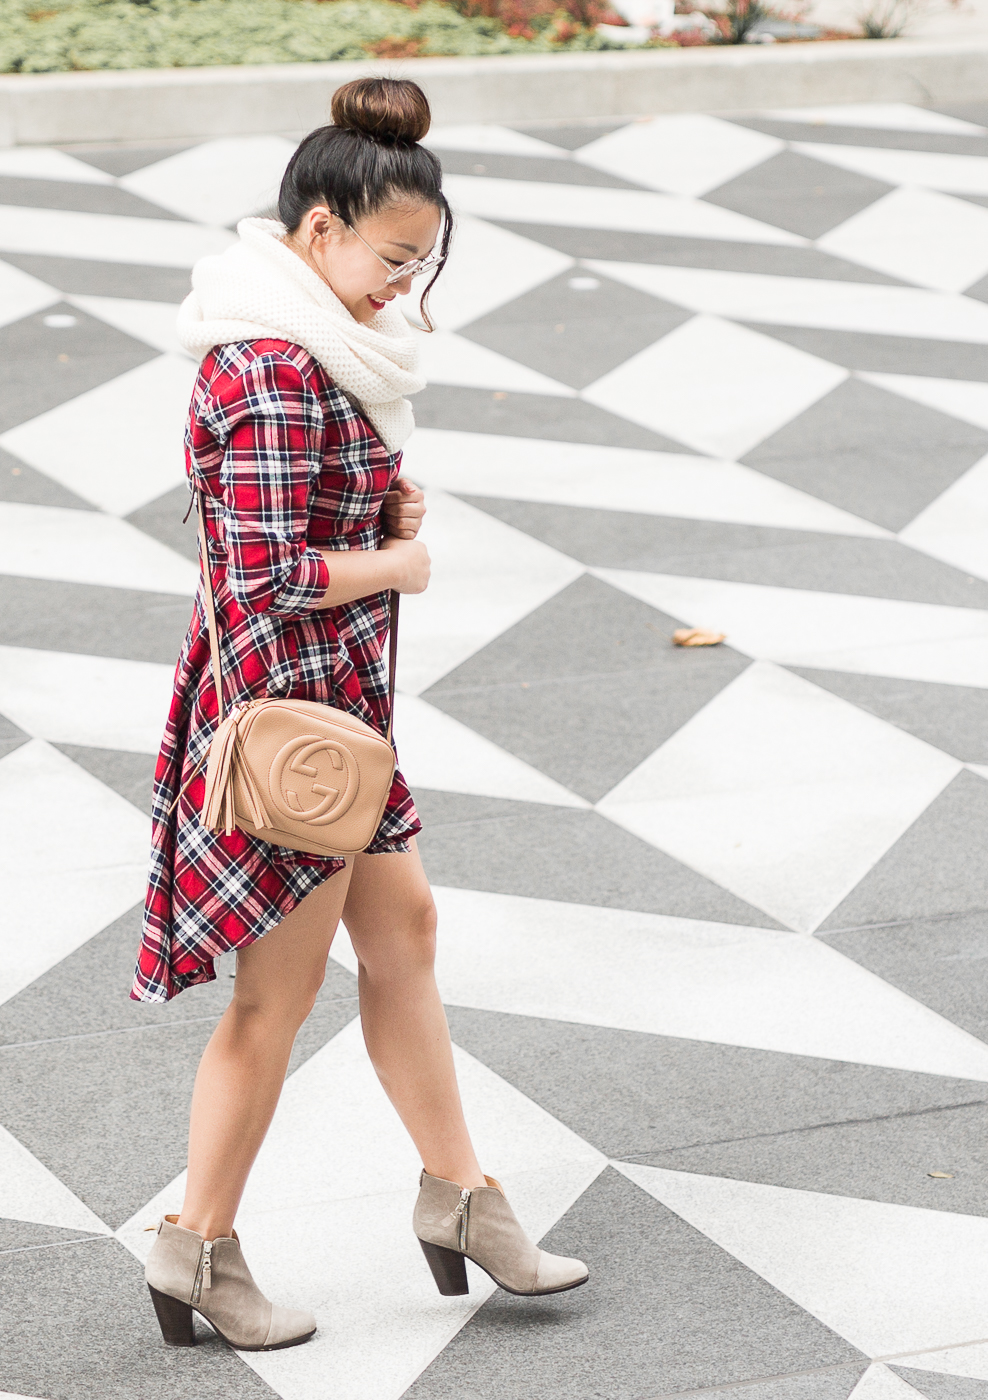 ASOS PrettyLittleThing Red Check Shirt Dress | The Chic Diary